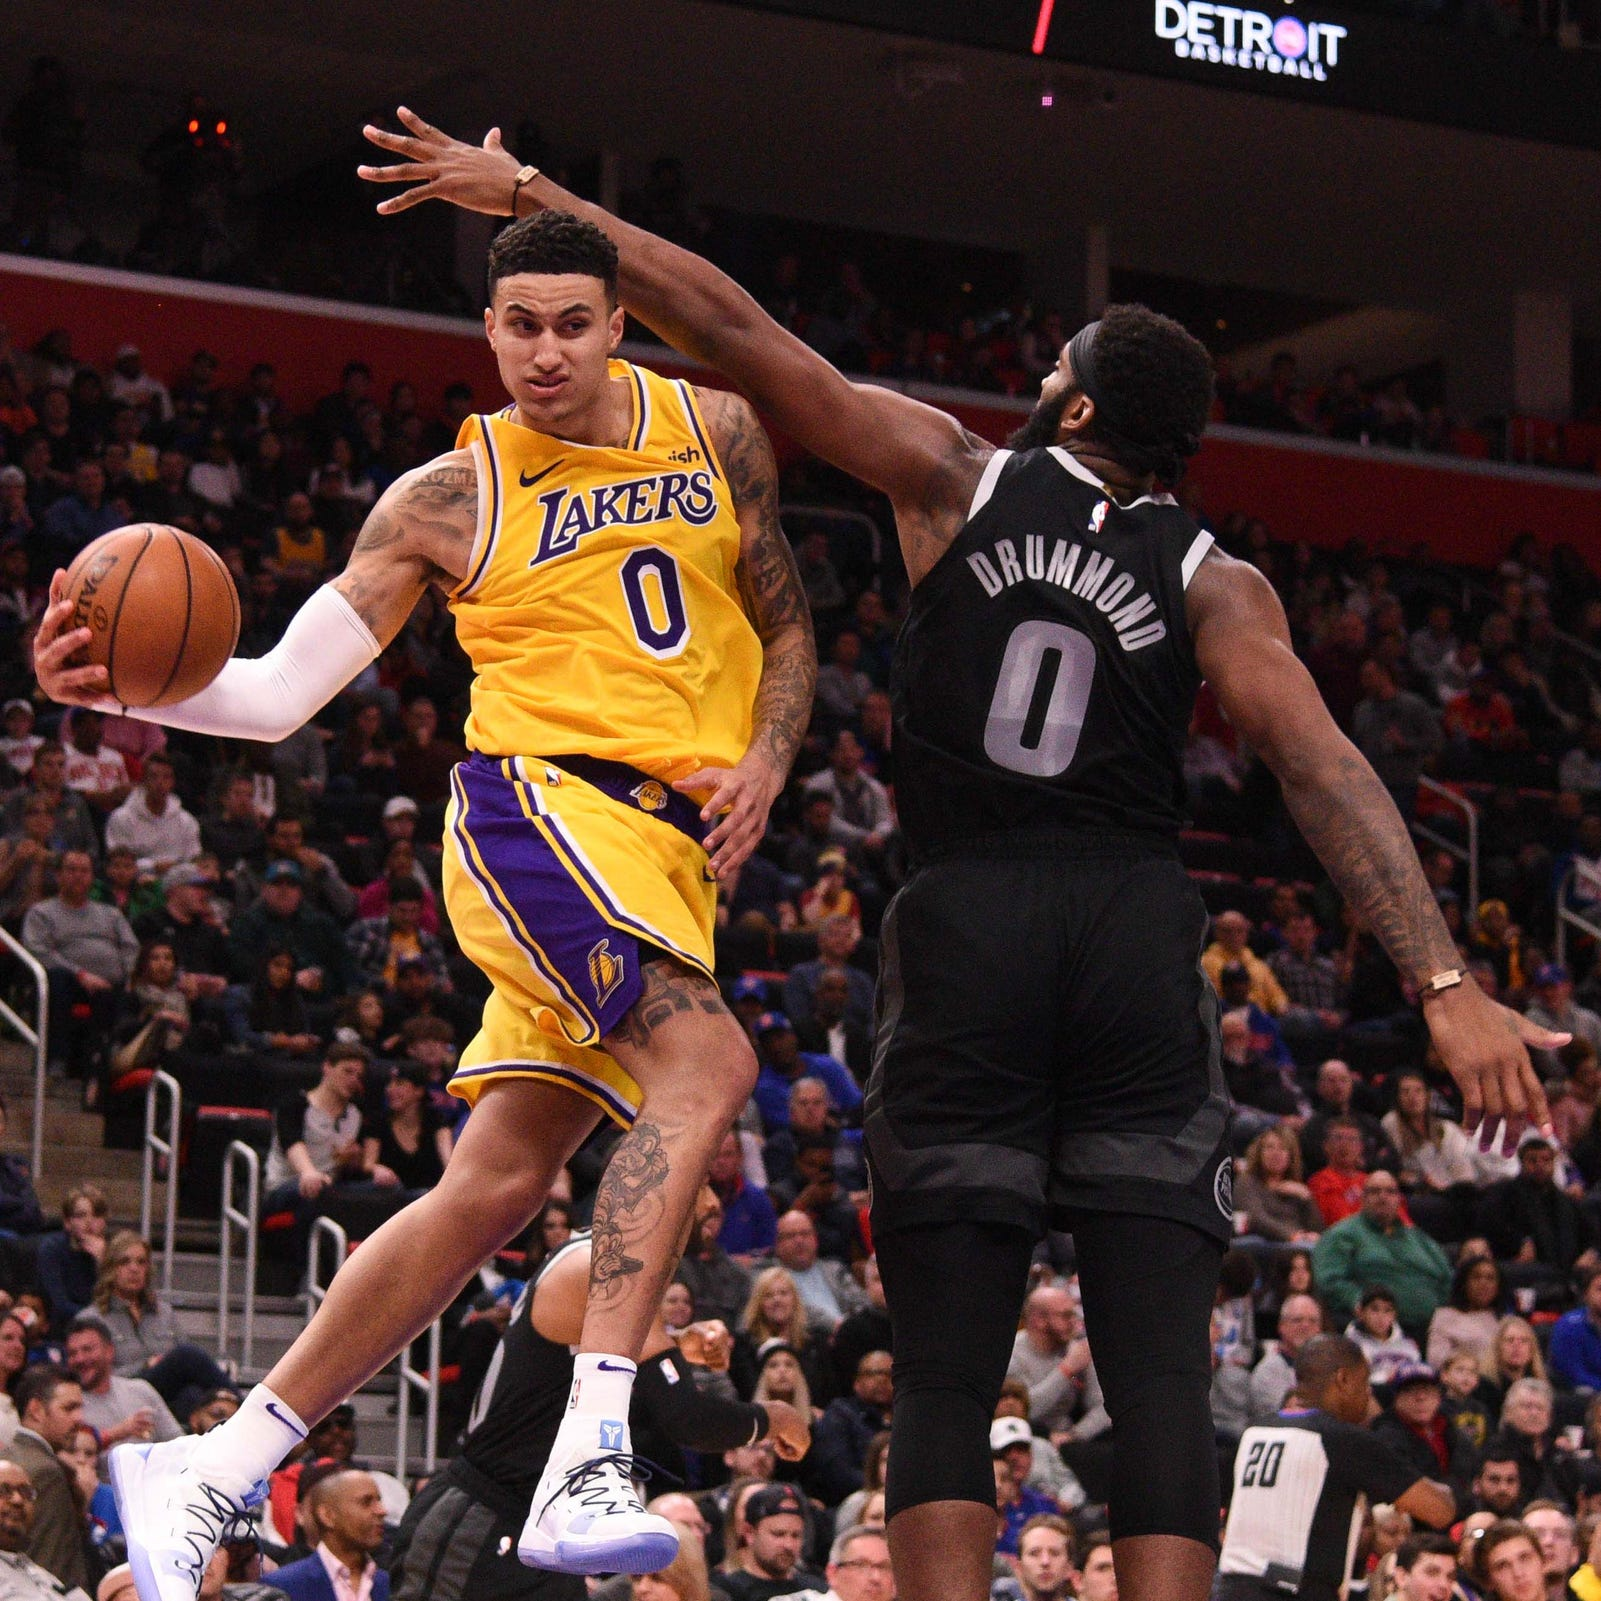 Game thread: Pistons get past Lakers, 111-97